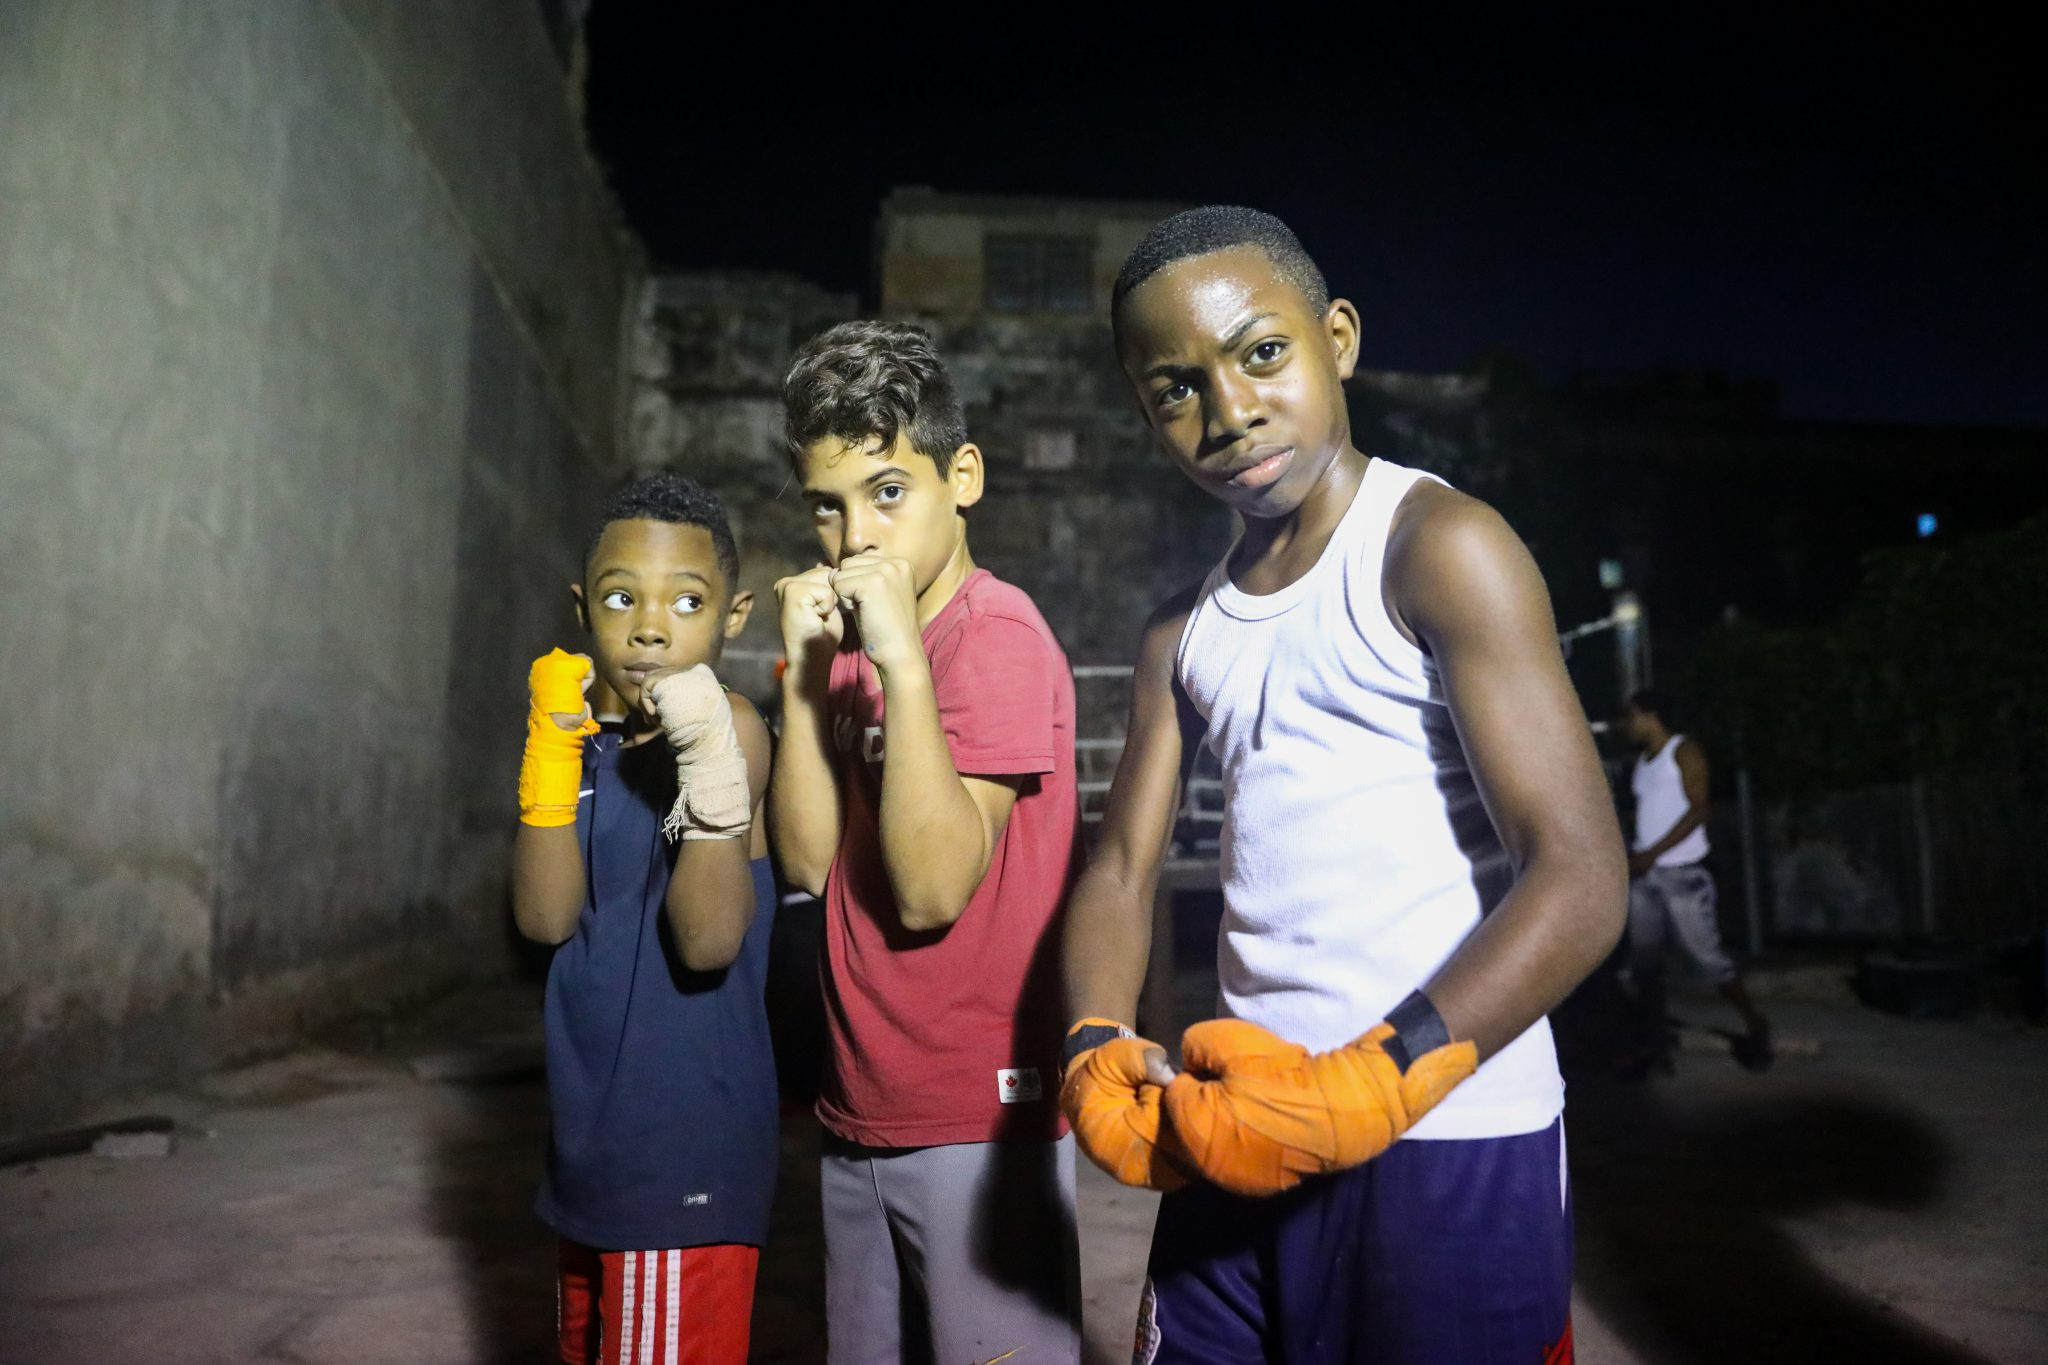 The boys of Soledad Street at Gimnasio de Boxeo Centro Habana. Photography by Luke Galati